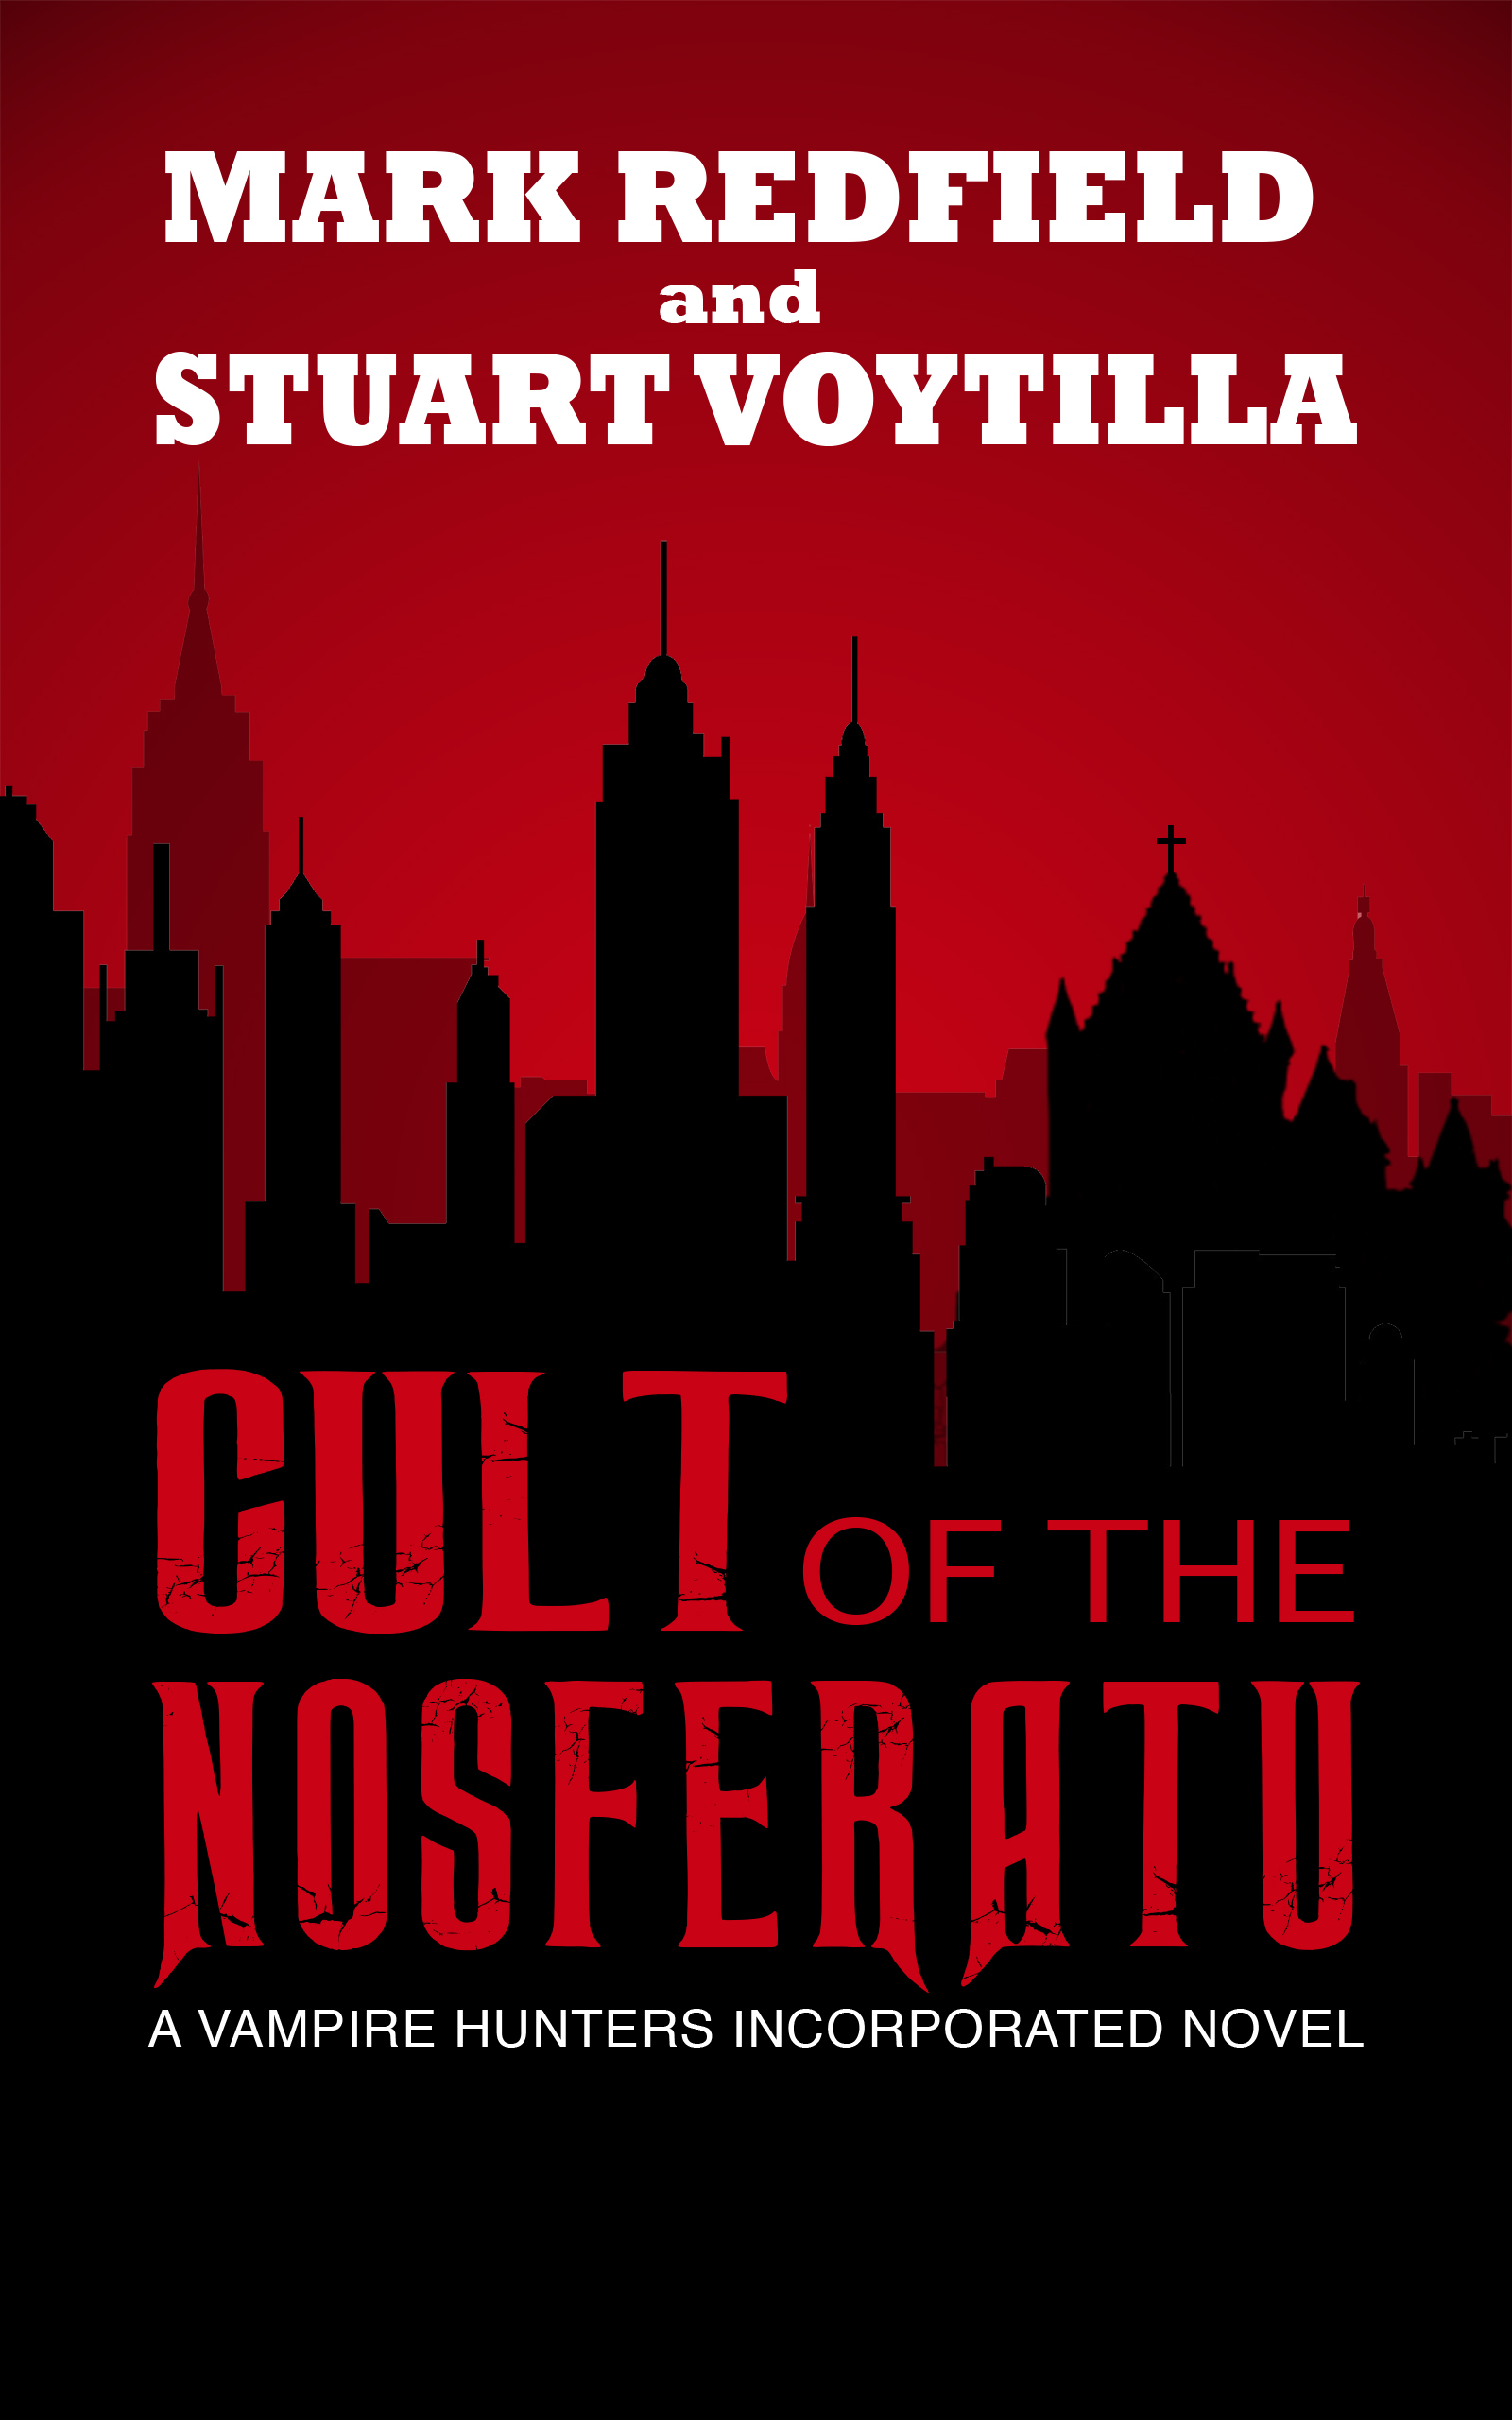 Vampire Hunters Incorporated Book One: The Cult Of The Nosferatu